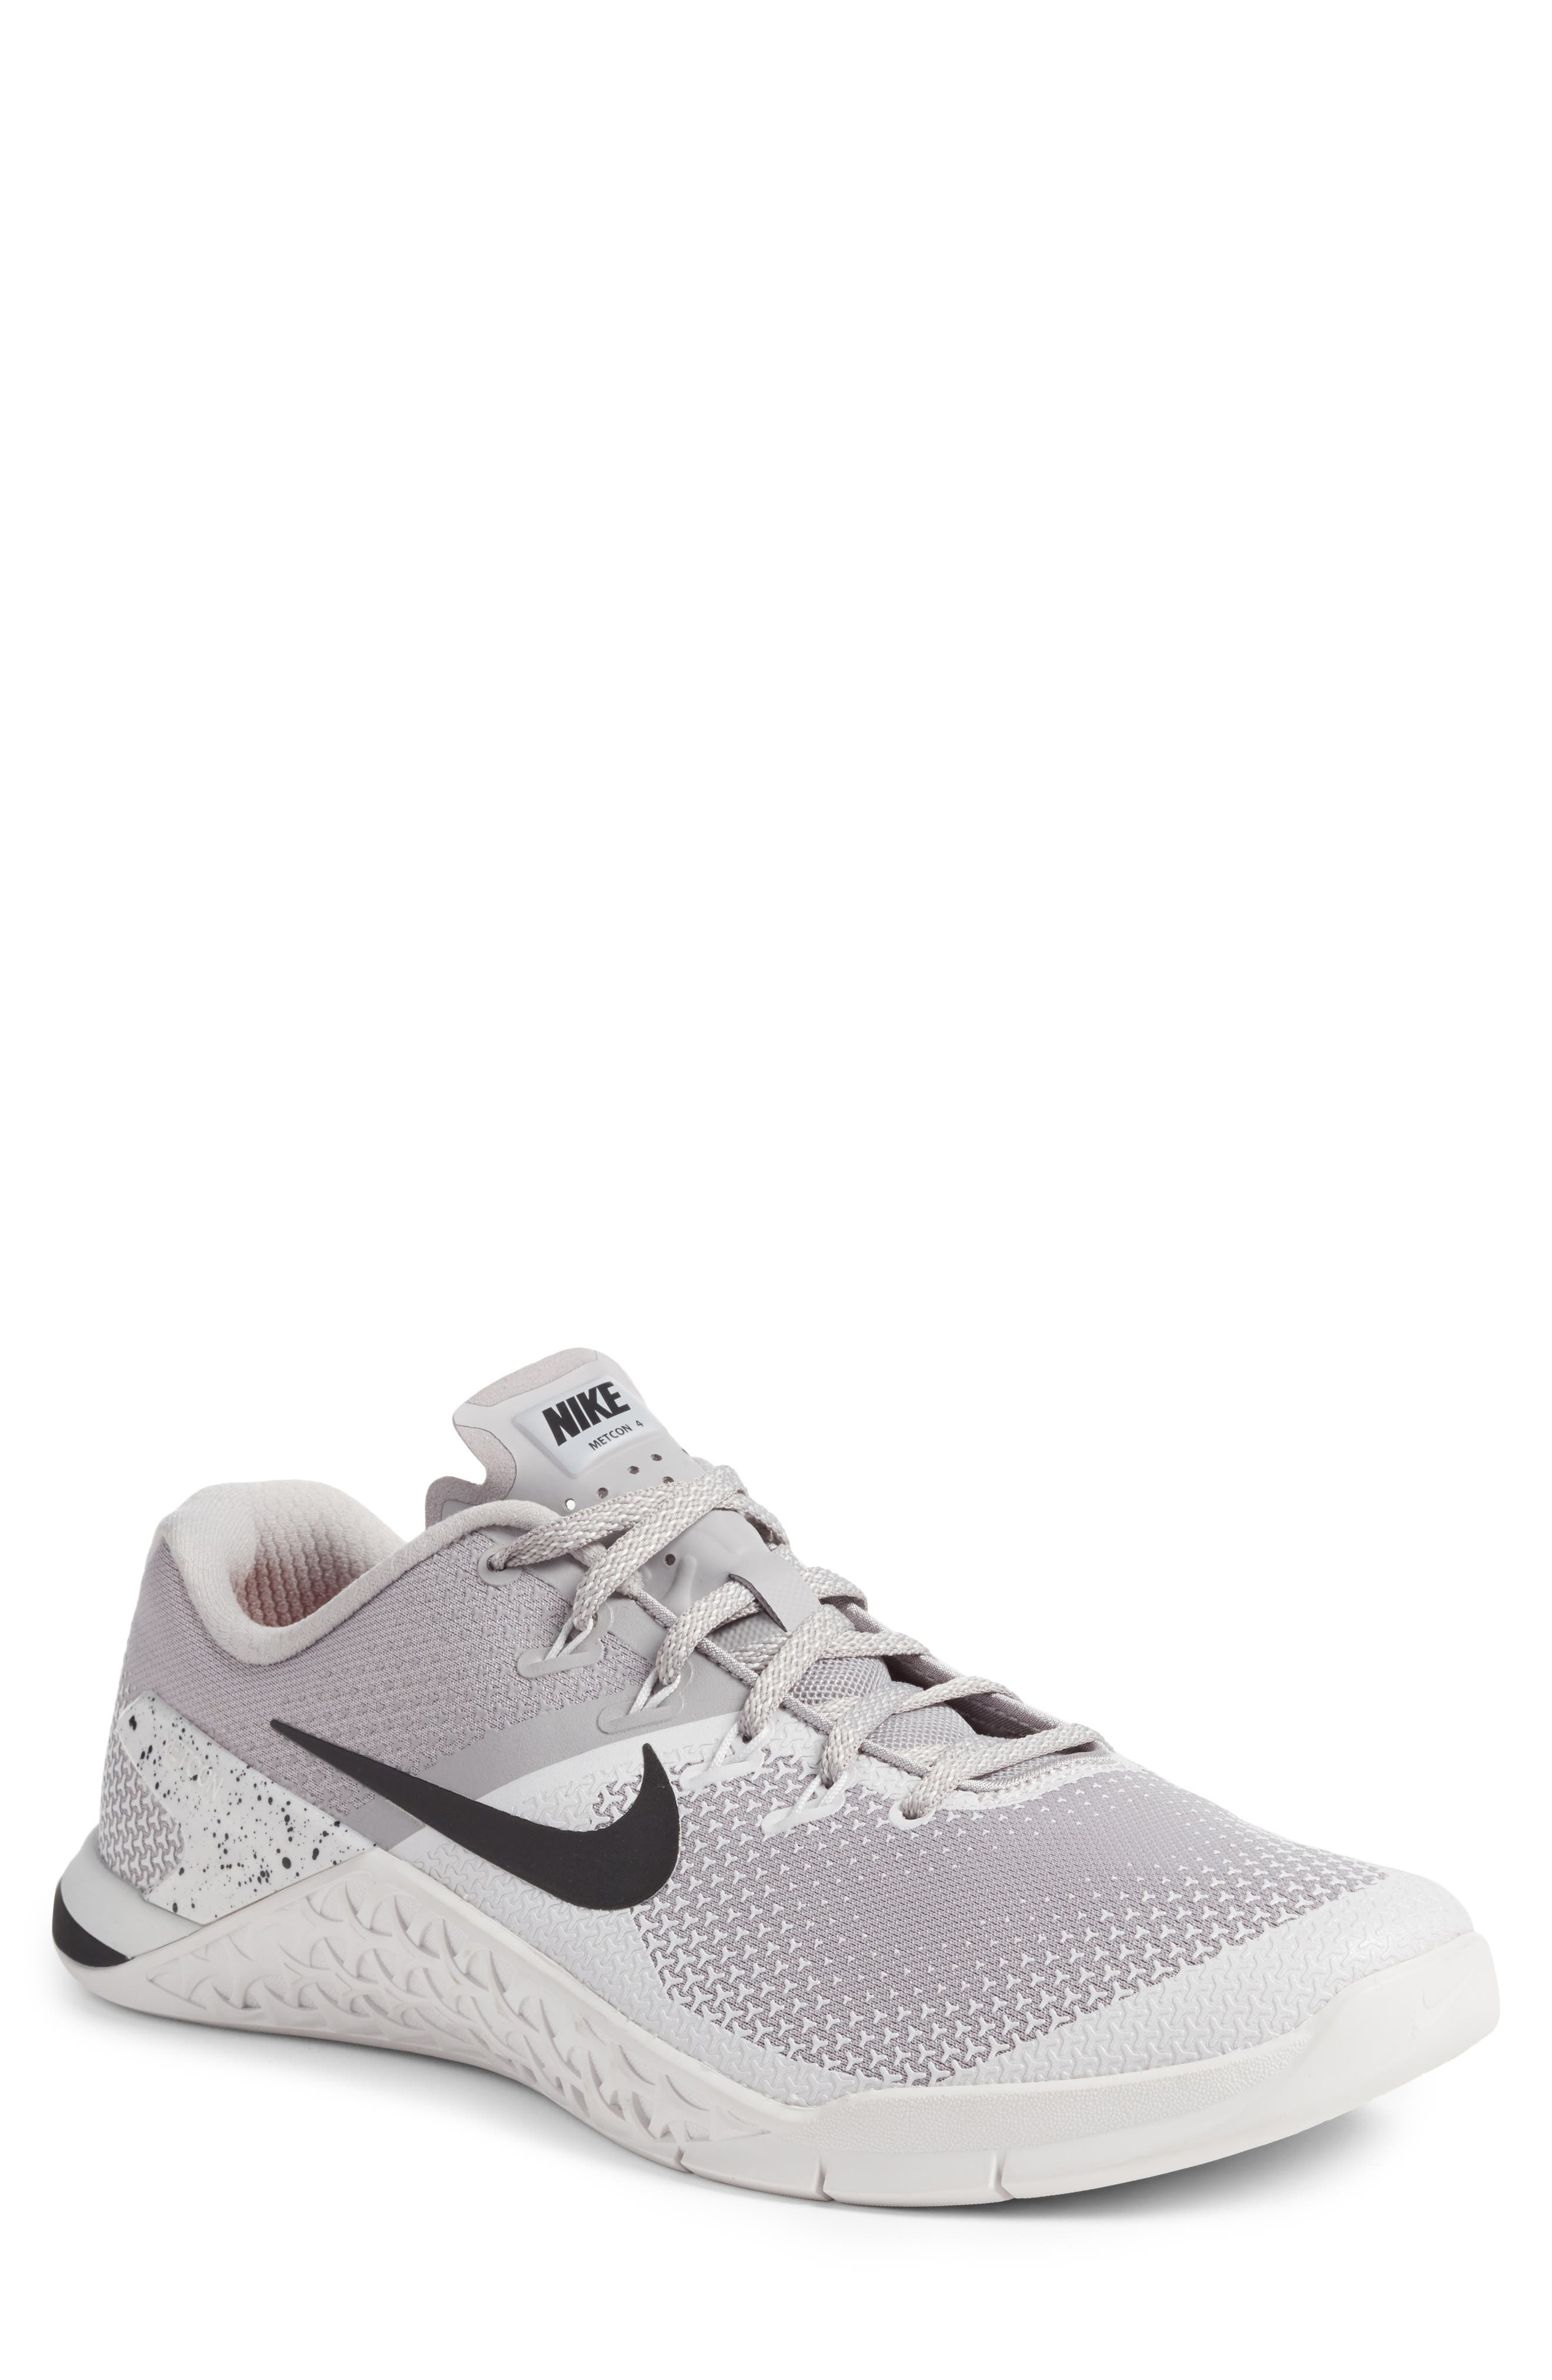 Nike Metcon 4 Training Shoe (Men)